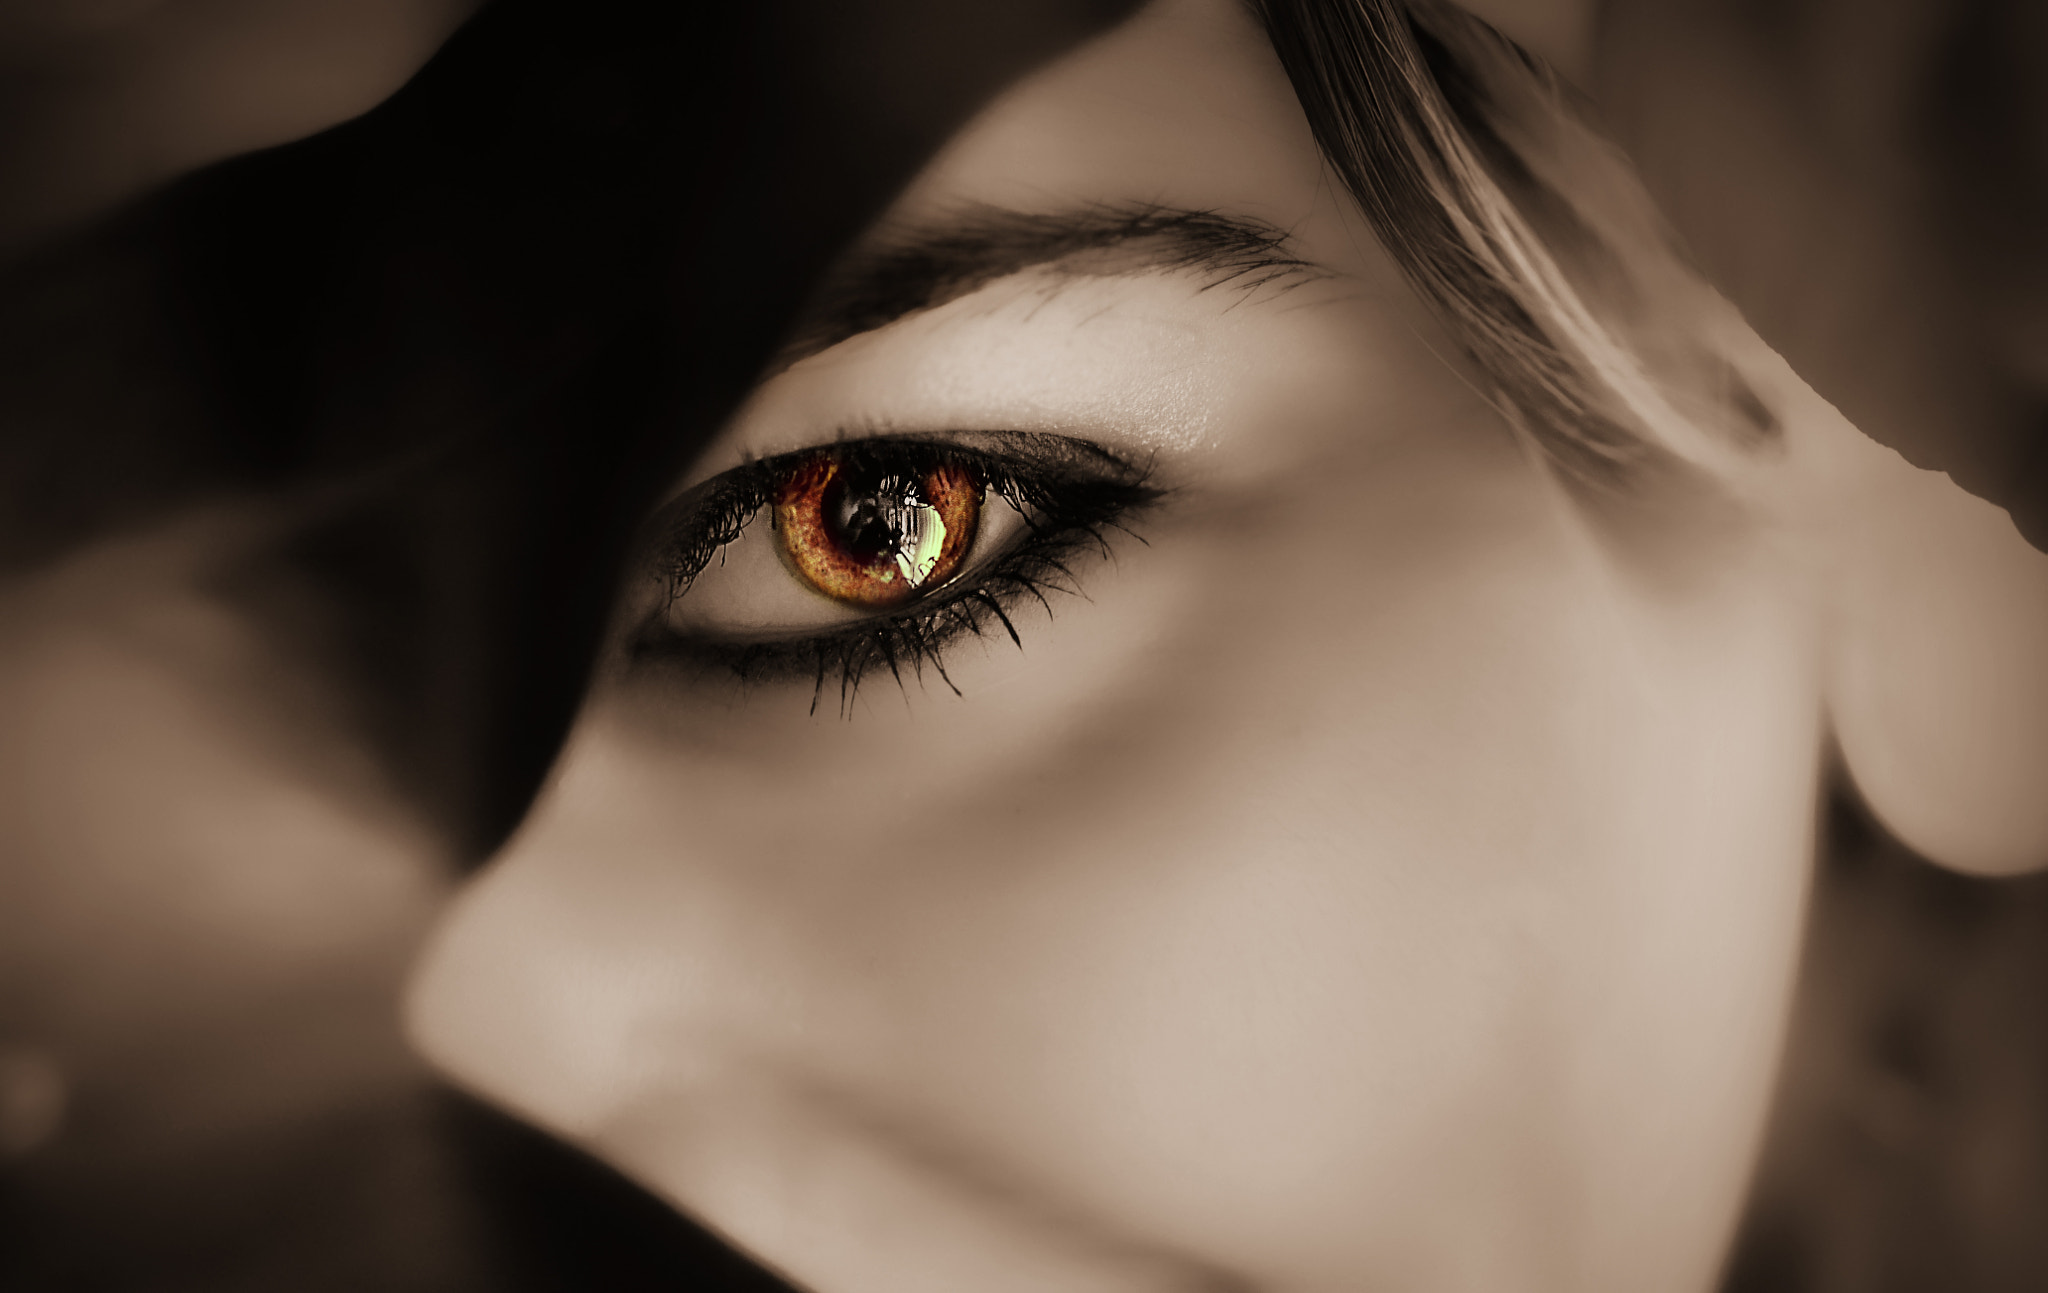 Photograph eye by Serhat Atlığ on 500px